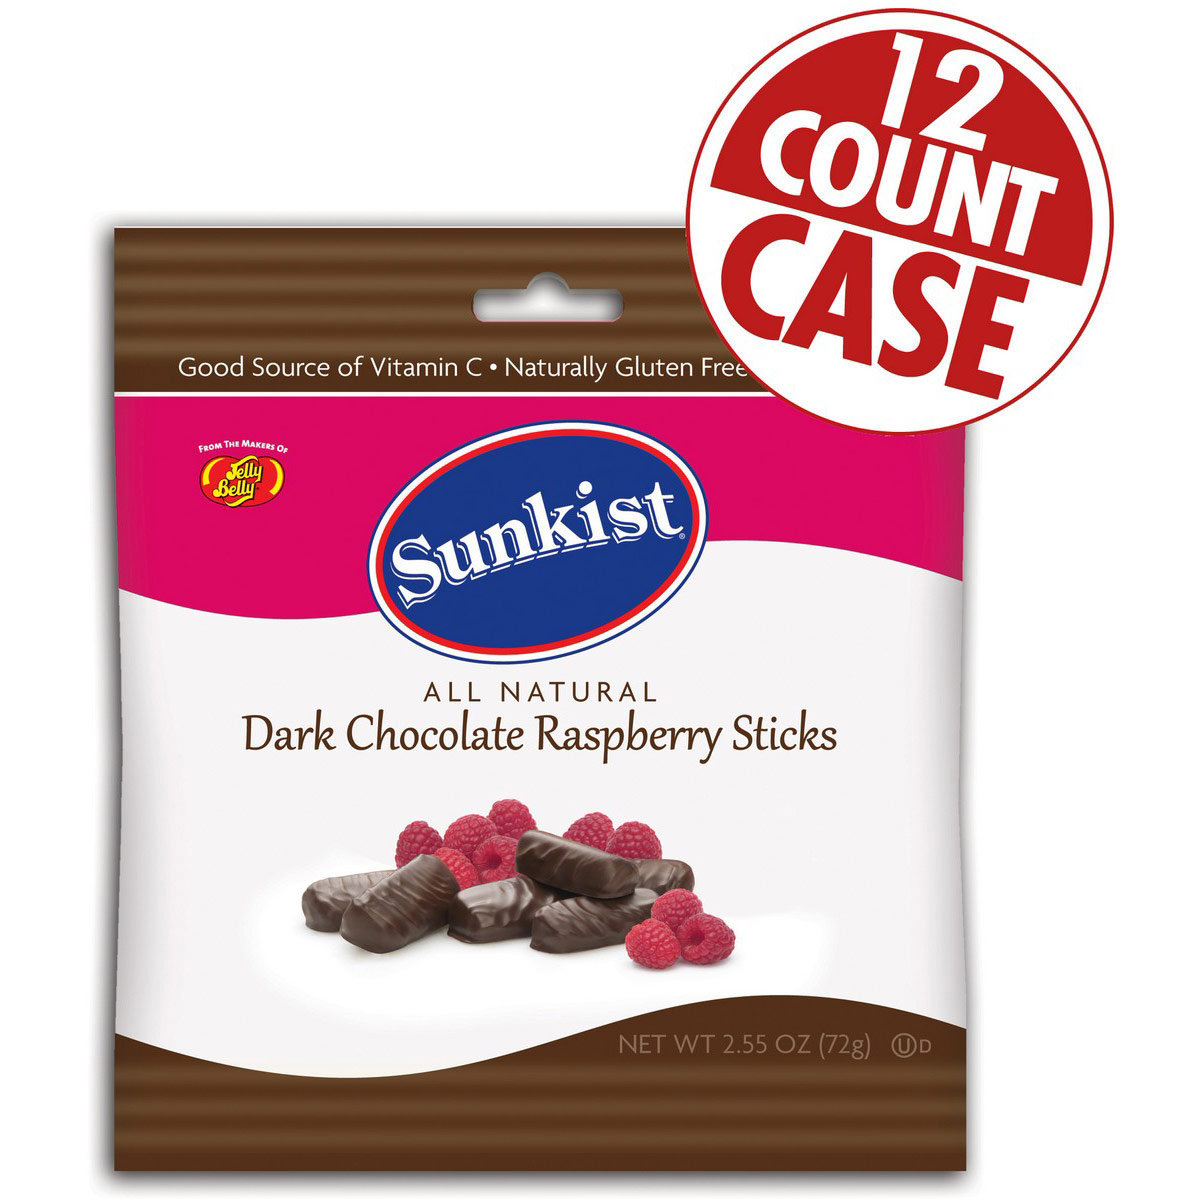 Sunkist® Dark Chocolate Raspberry Sticks - 2.55 oz Bag -12 Count Case